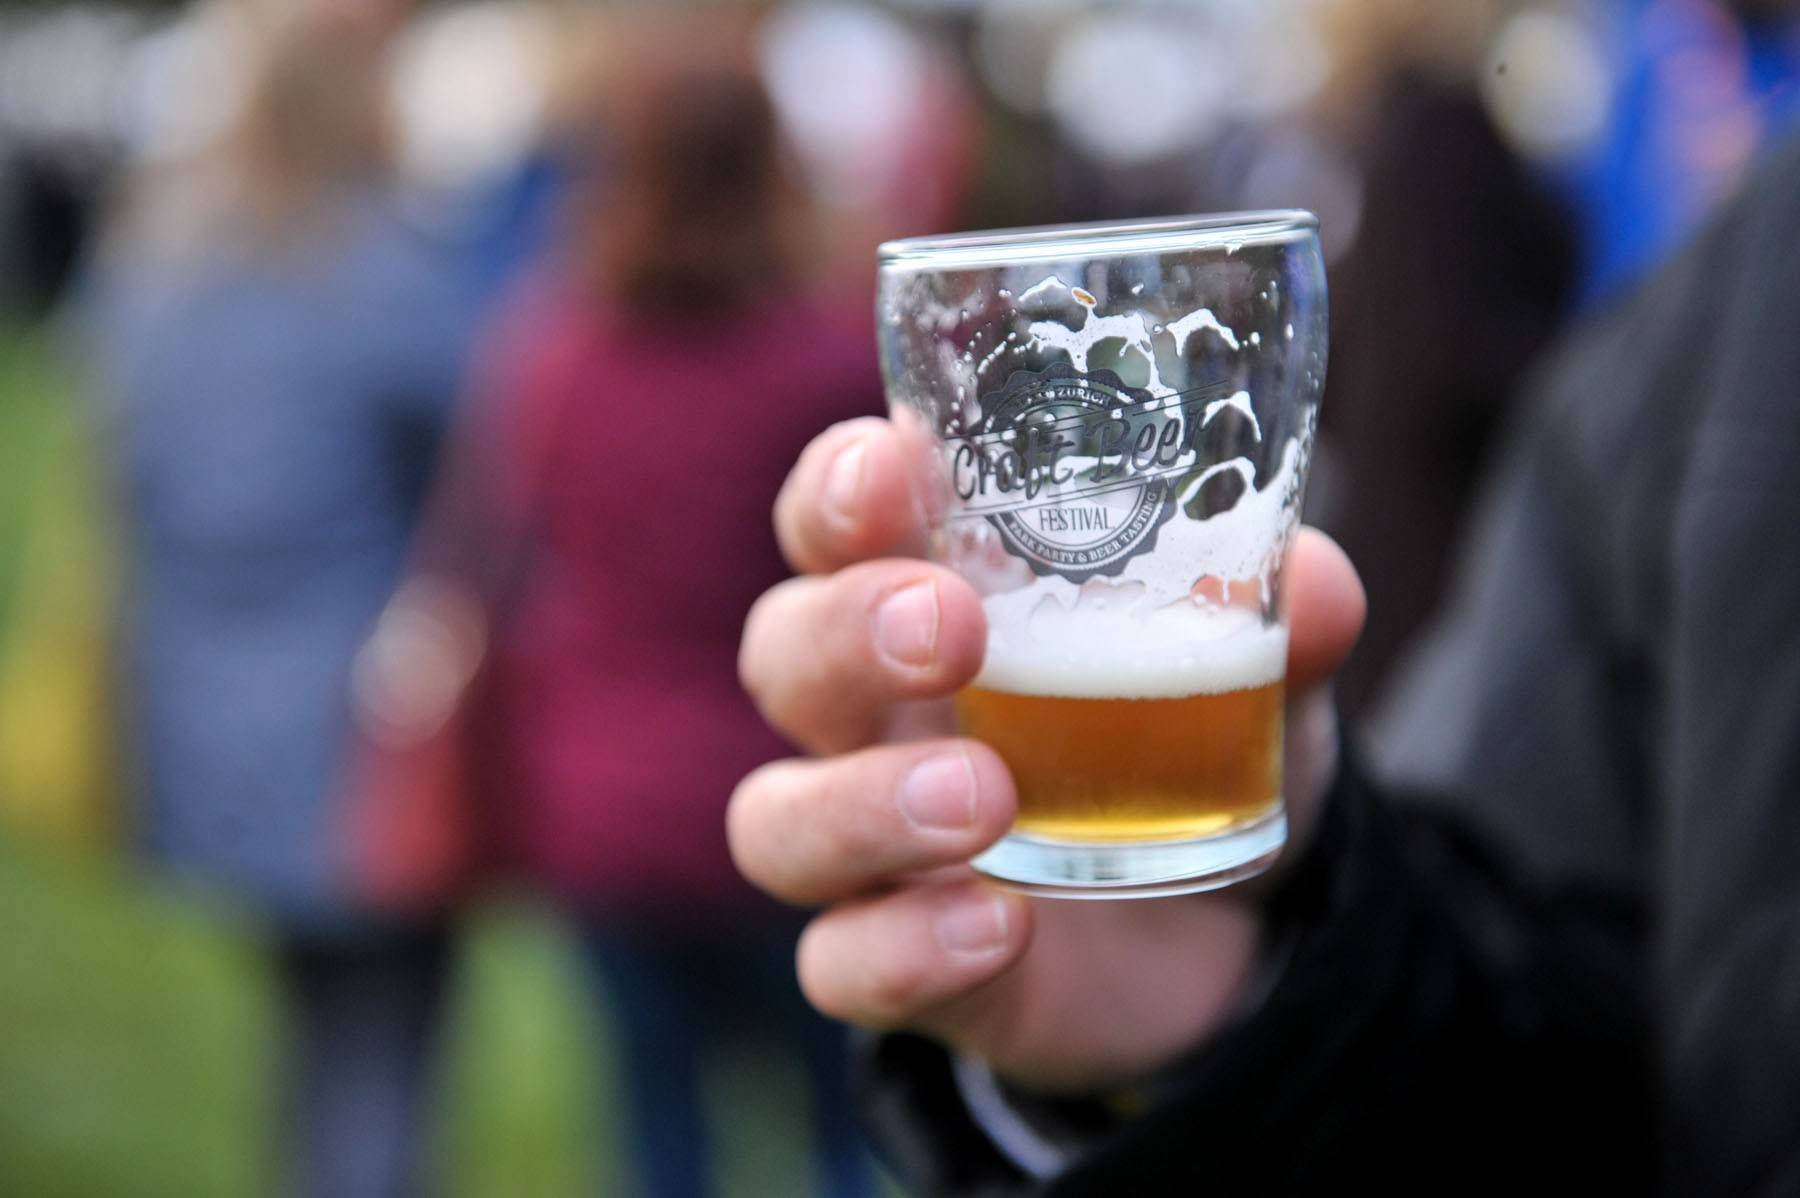 The Lake Zurich Craft Beer Festival features samples, food and music.